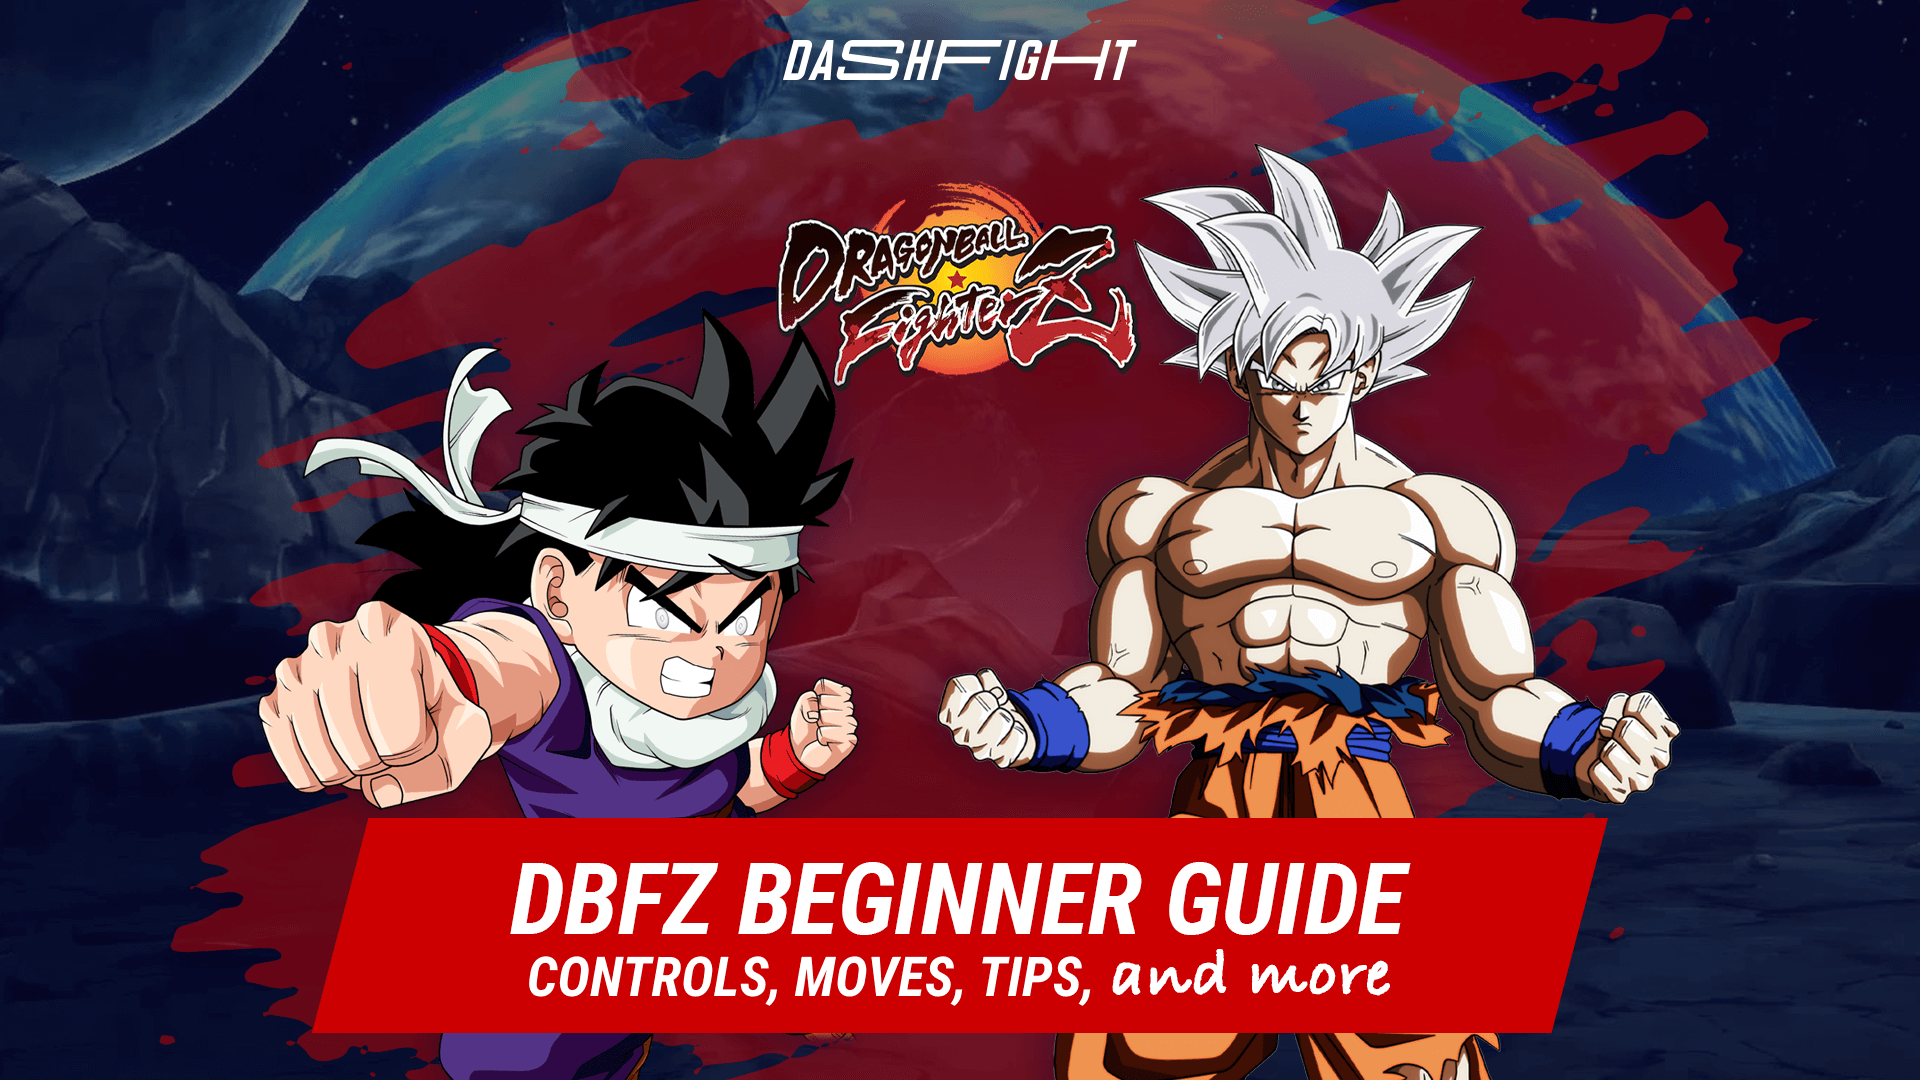 DBFZ Beginner Guide: Controls, Moves, Tips, and more